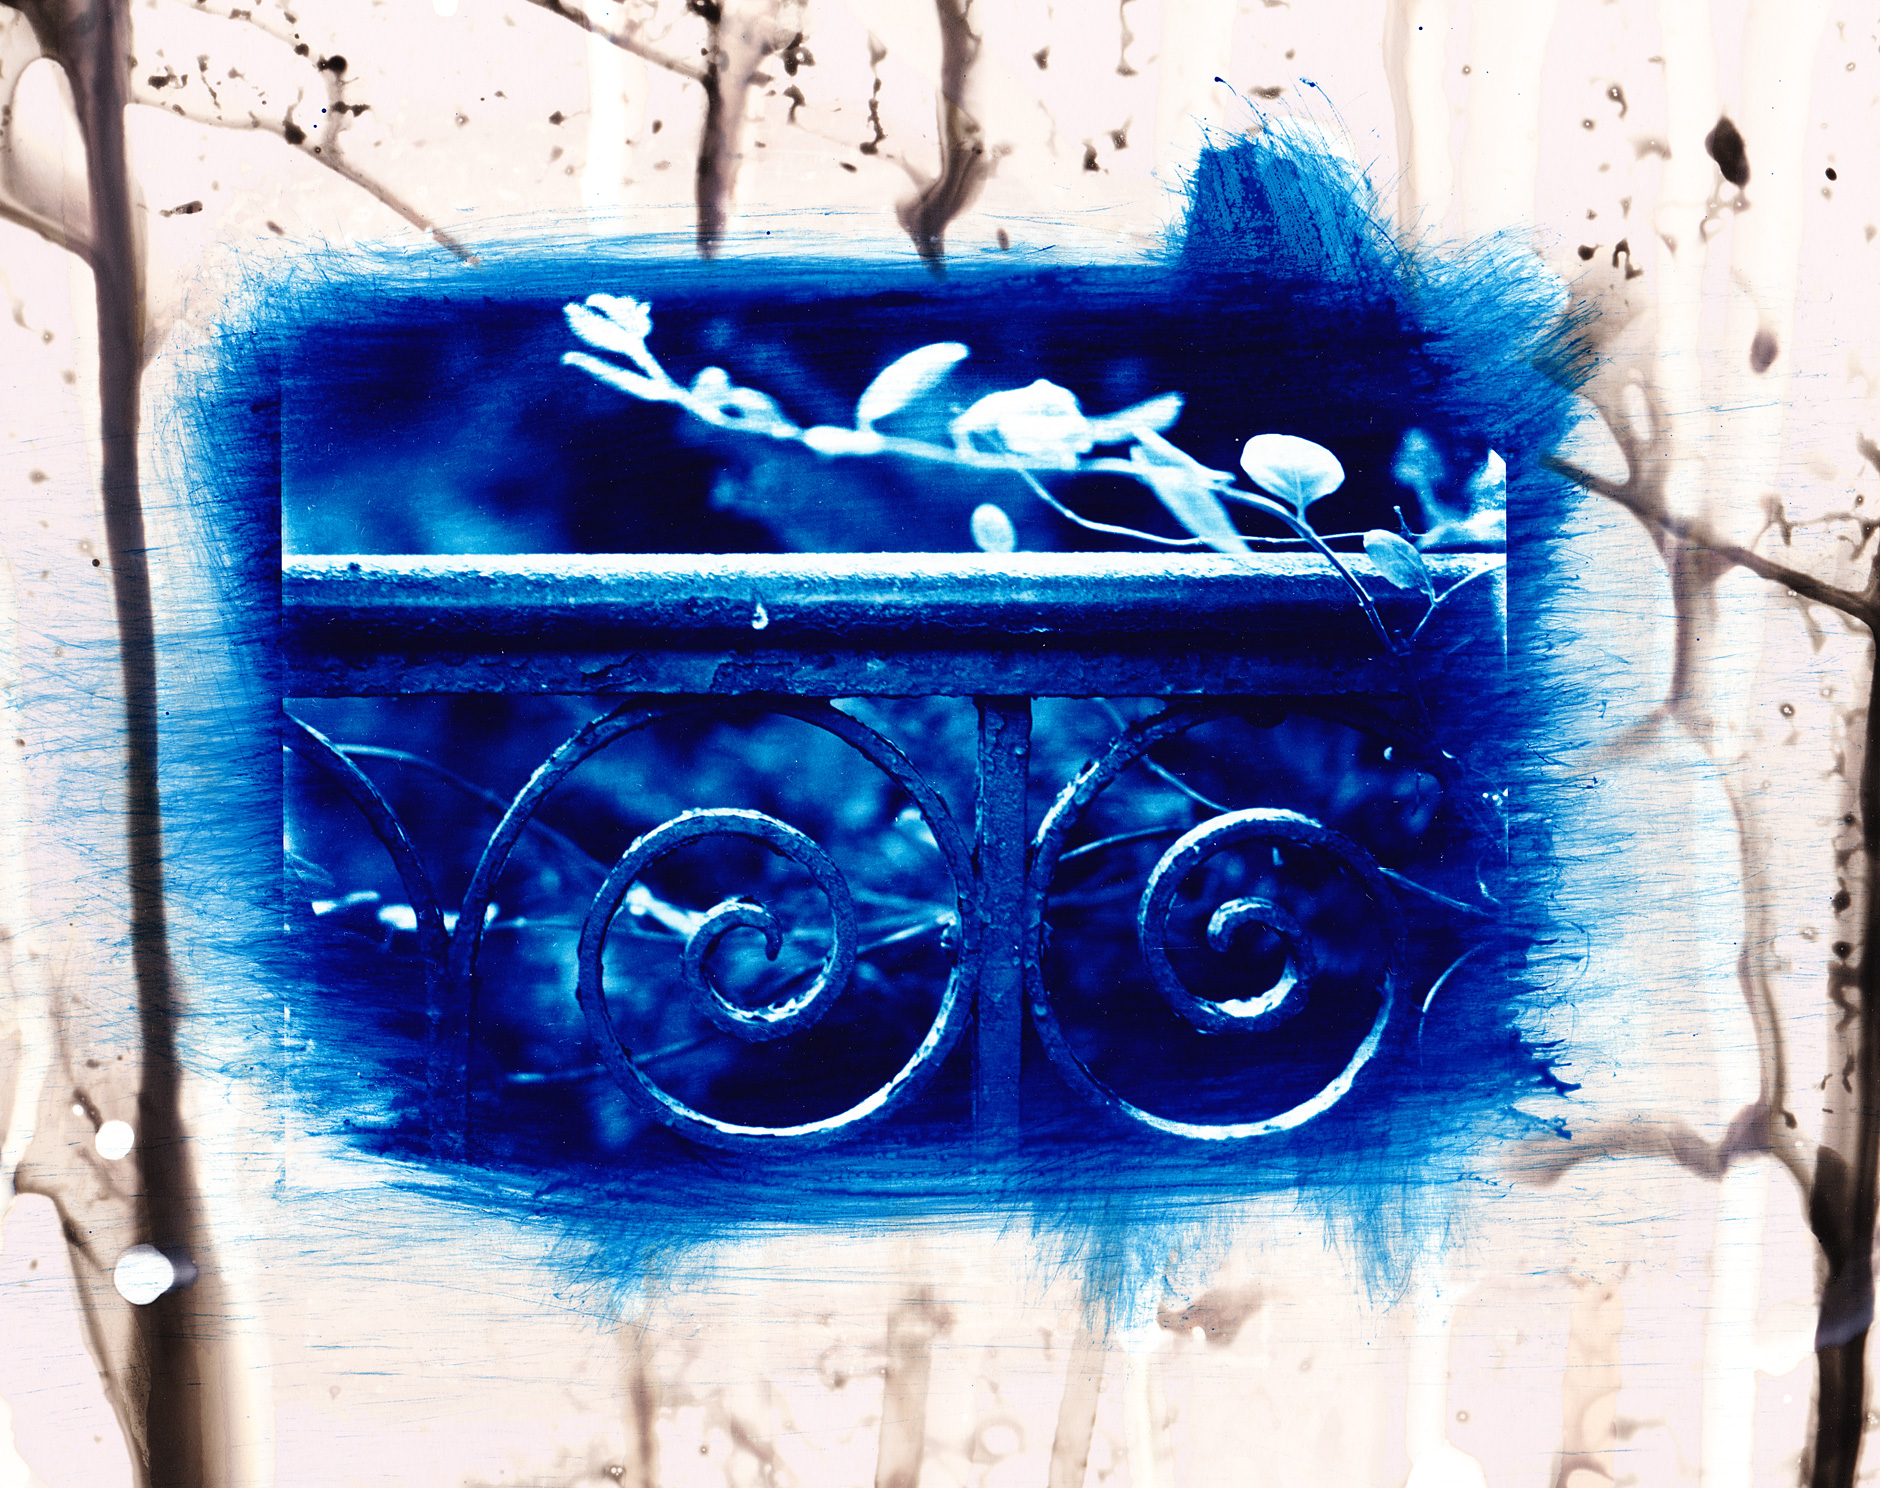 Cyanotype on photo paper image of a metal fence